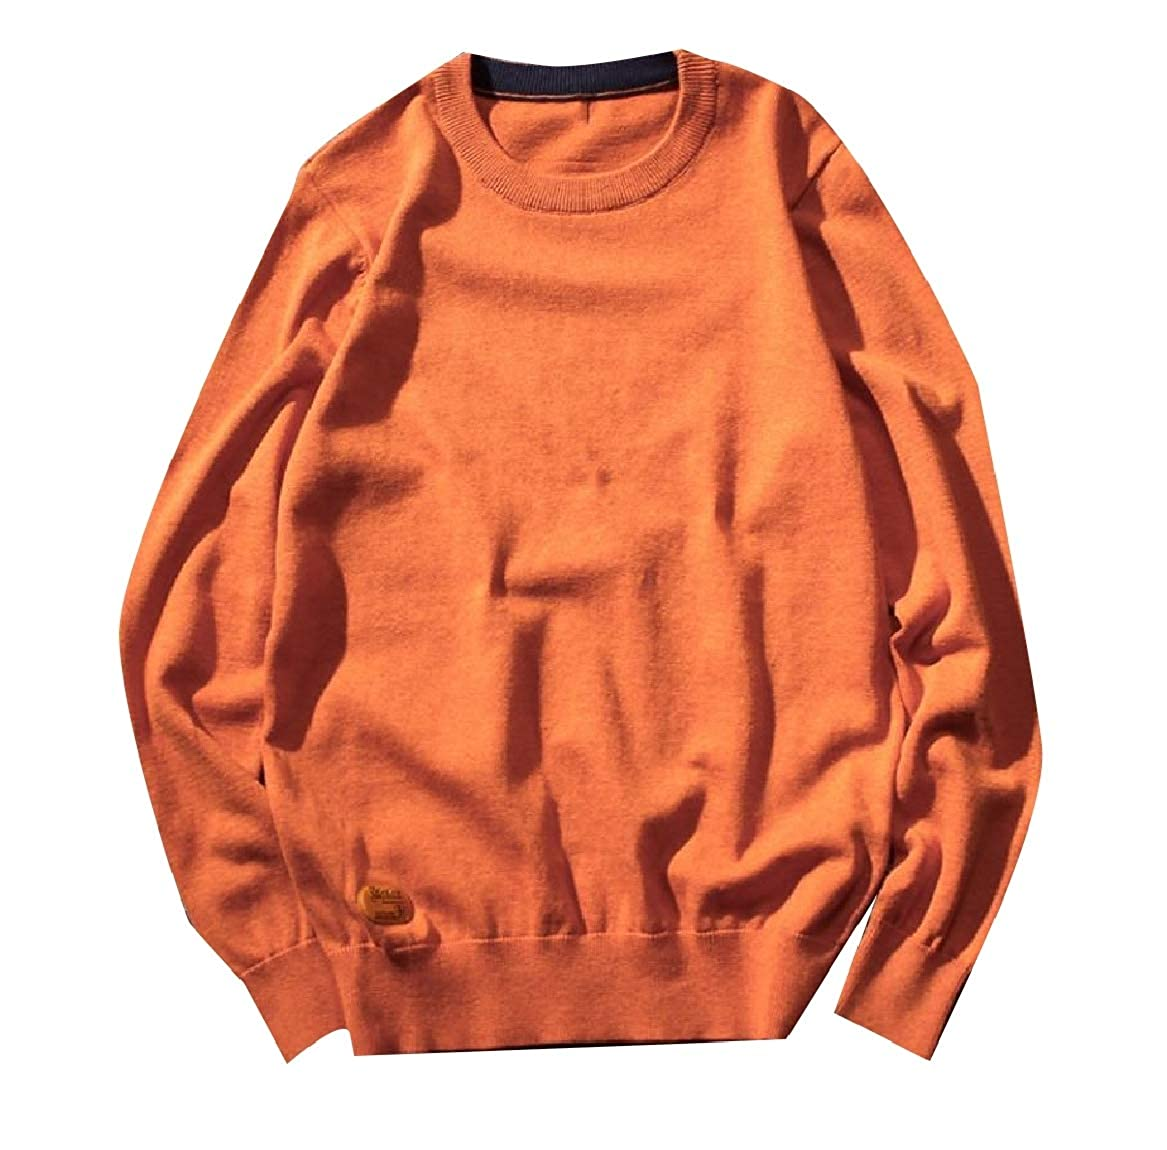 YUNY Mens Regular Relaxed Fit Relaxed-Fit Soft Knit Autumn Sweaters Orange XL